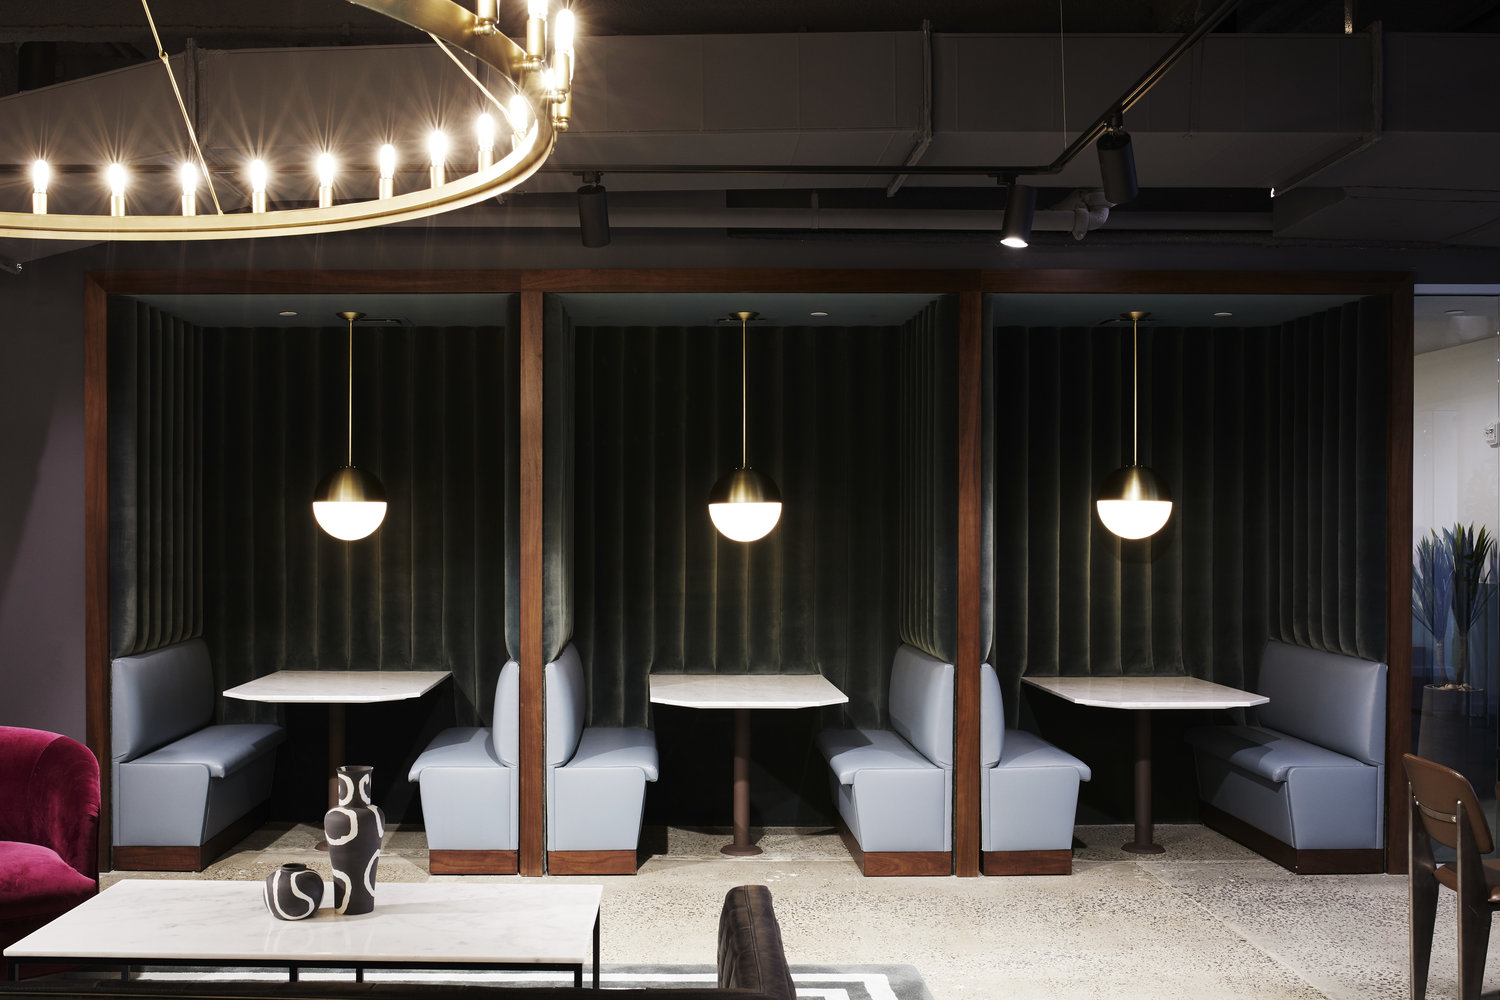 Semi-private tables in a modern office space